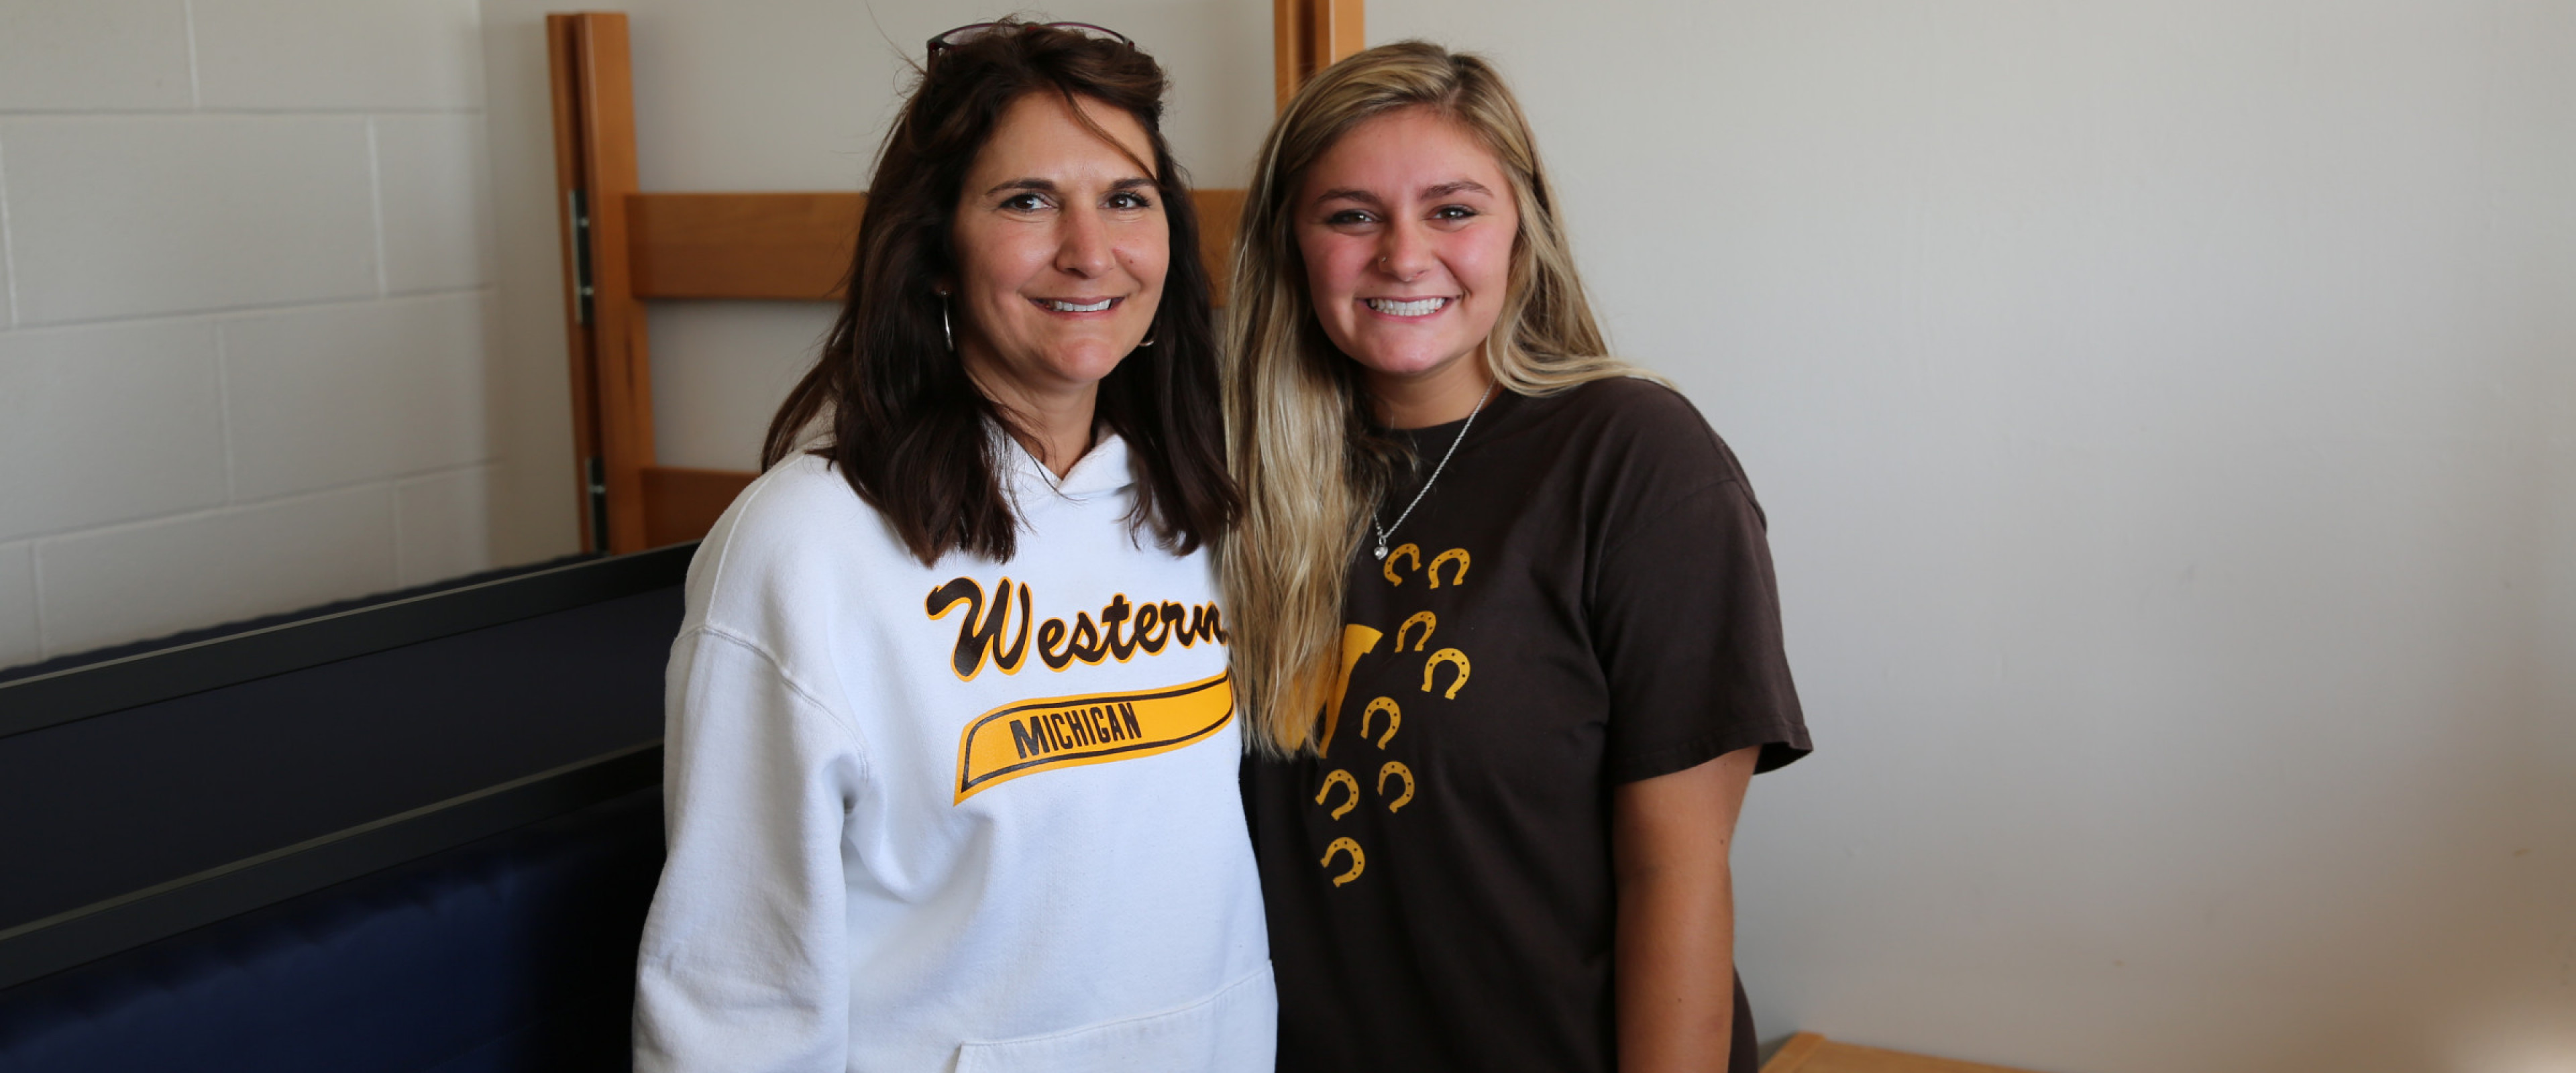 WMU student with parent